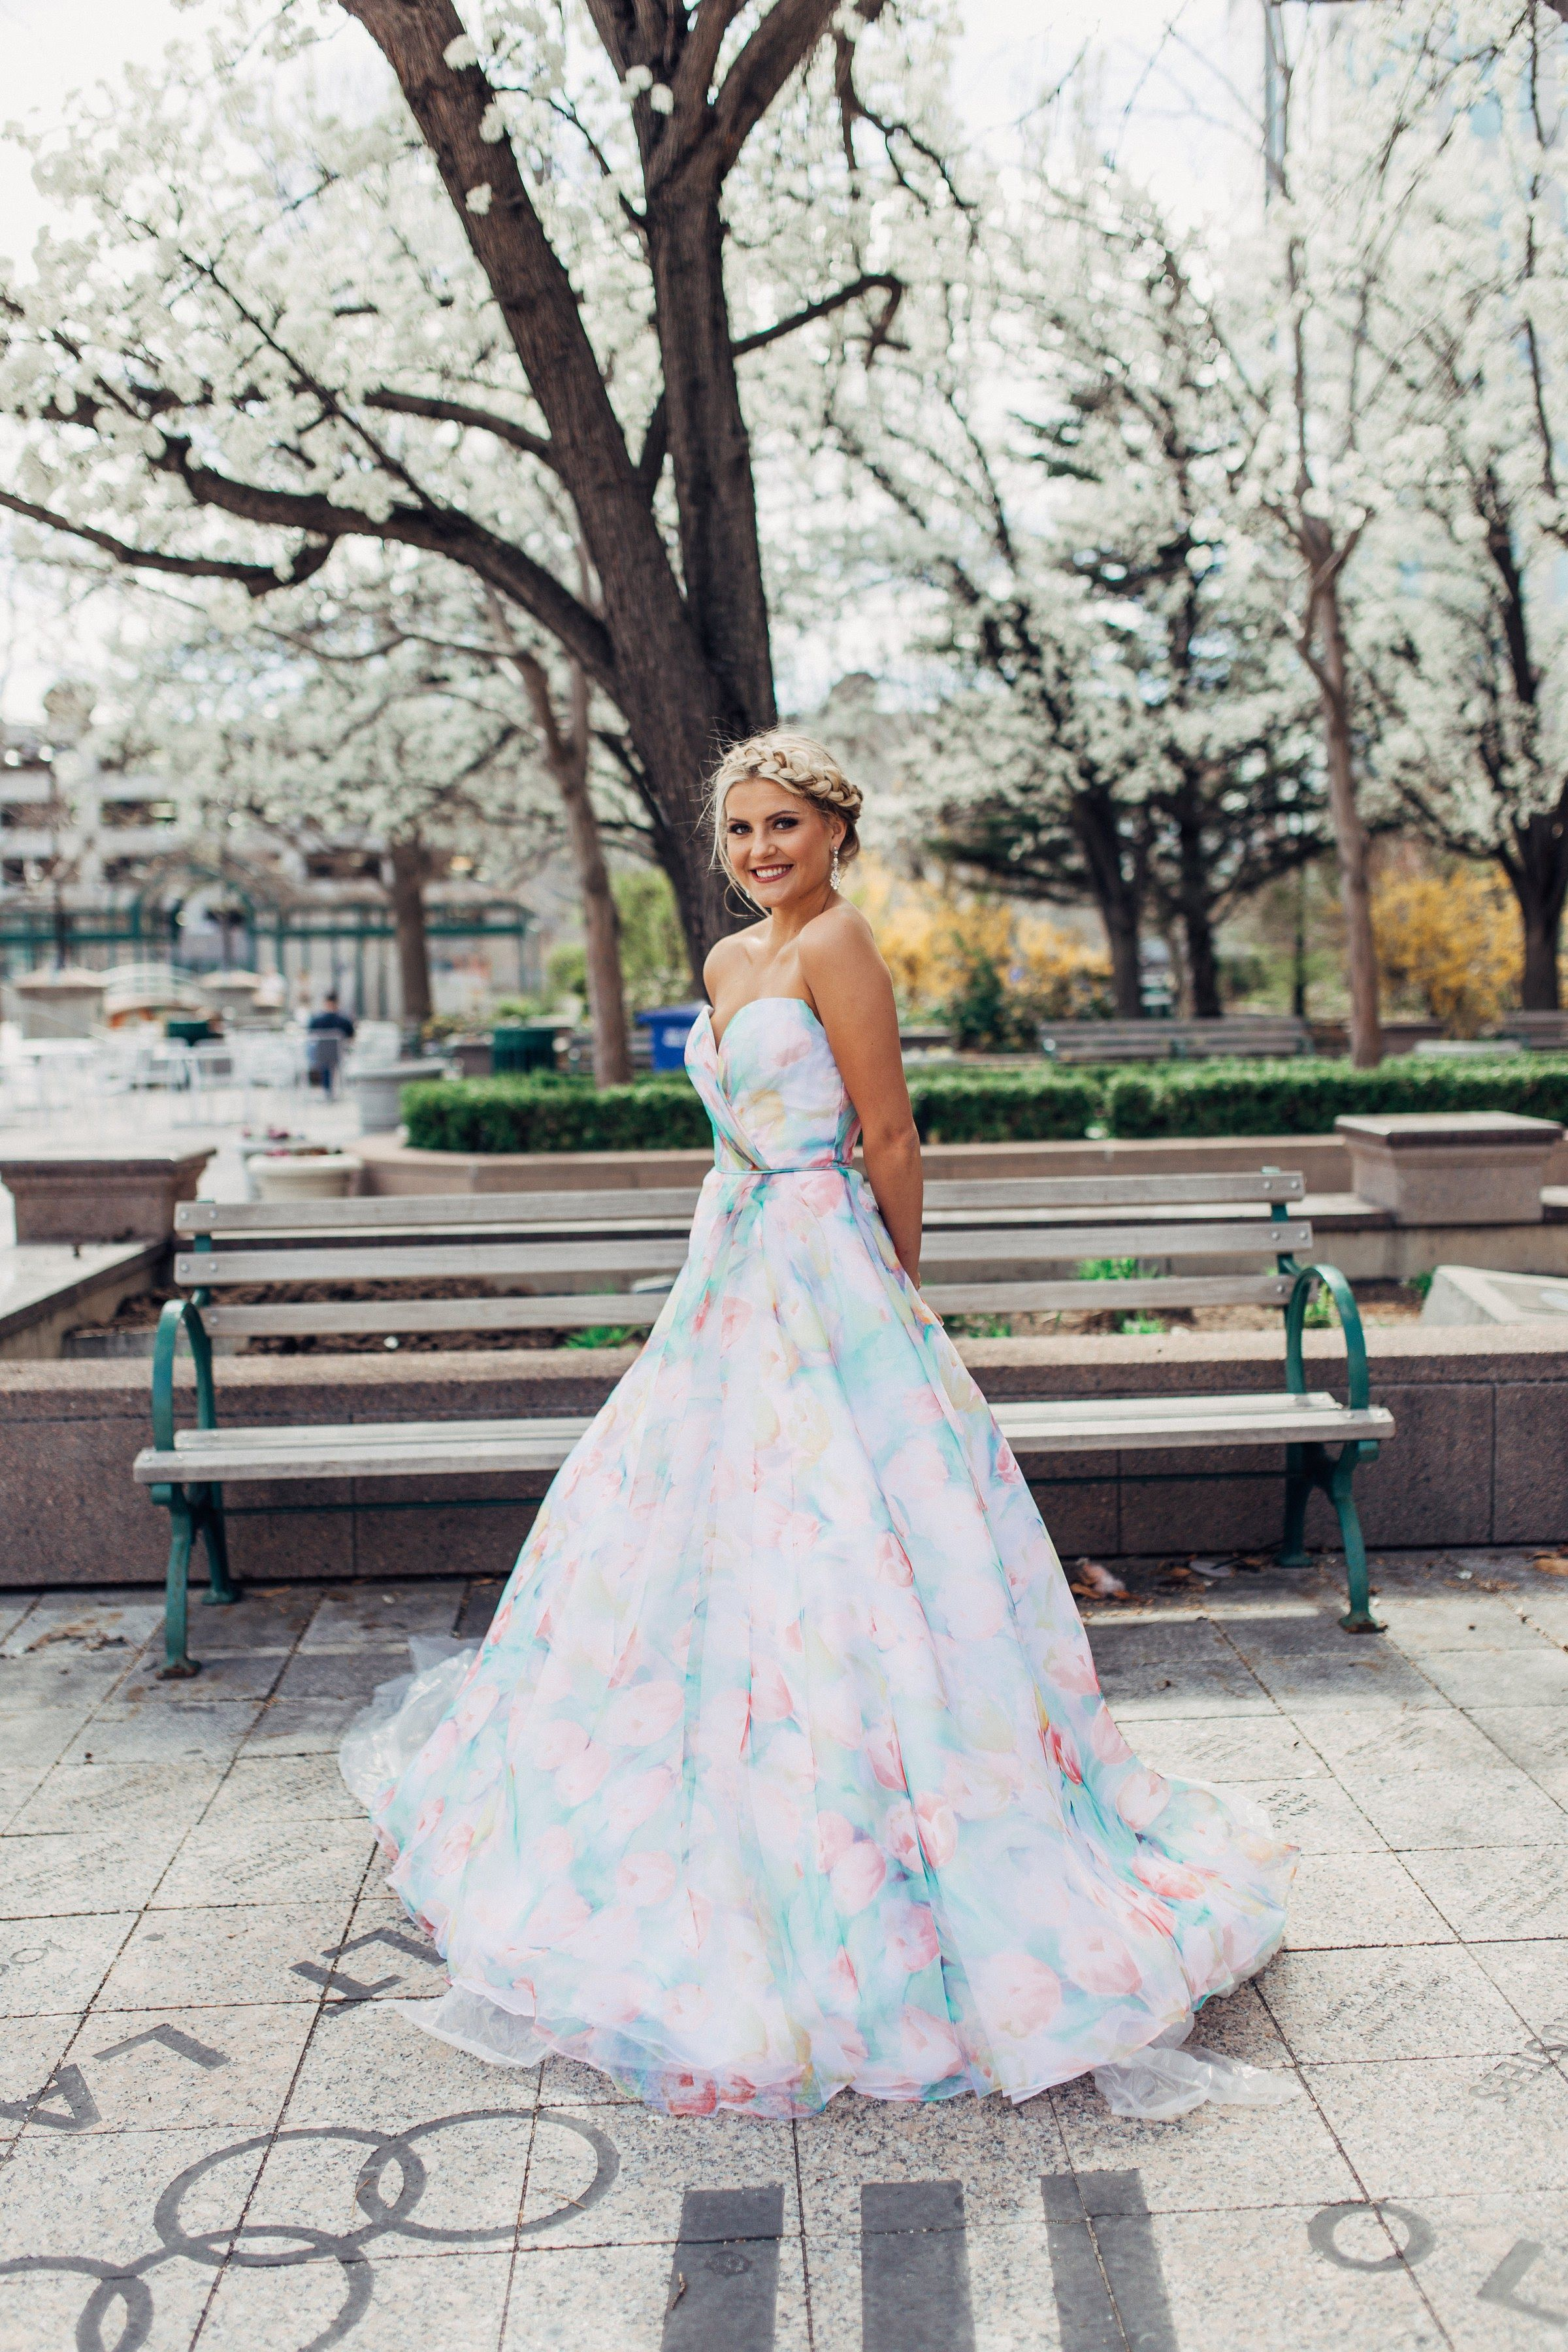 be98829d238 Sherri Hill Strapless Floral Watercolor Print Ballgown Sweetheart Neckline Ypsilon  Dresses Prom Pageant Evening Gown Homecoming Sweethearts Black Tie Gala ...